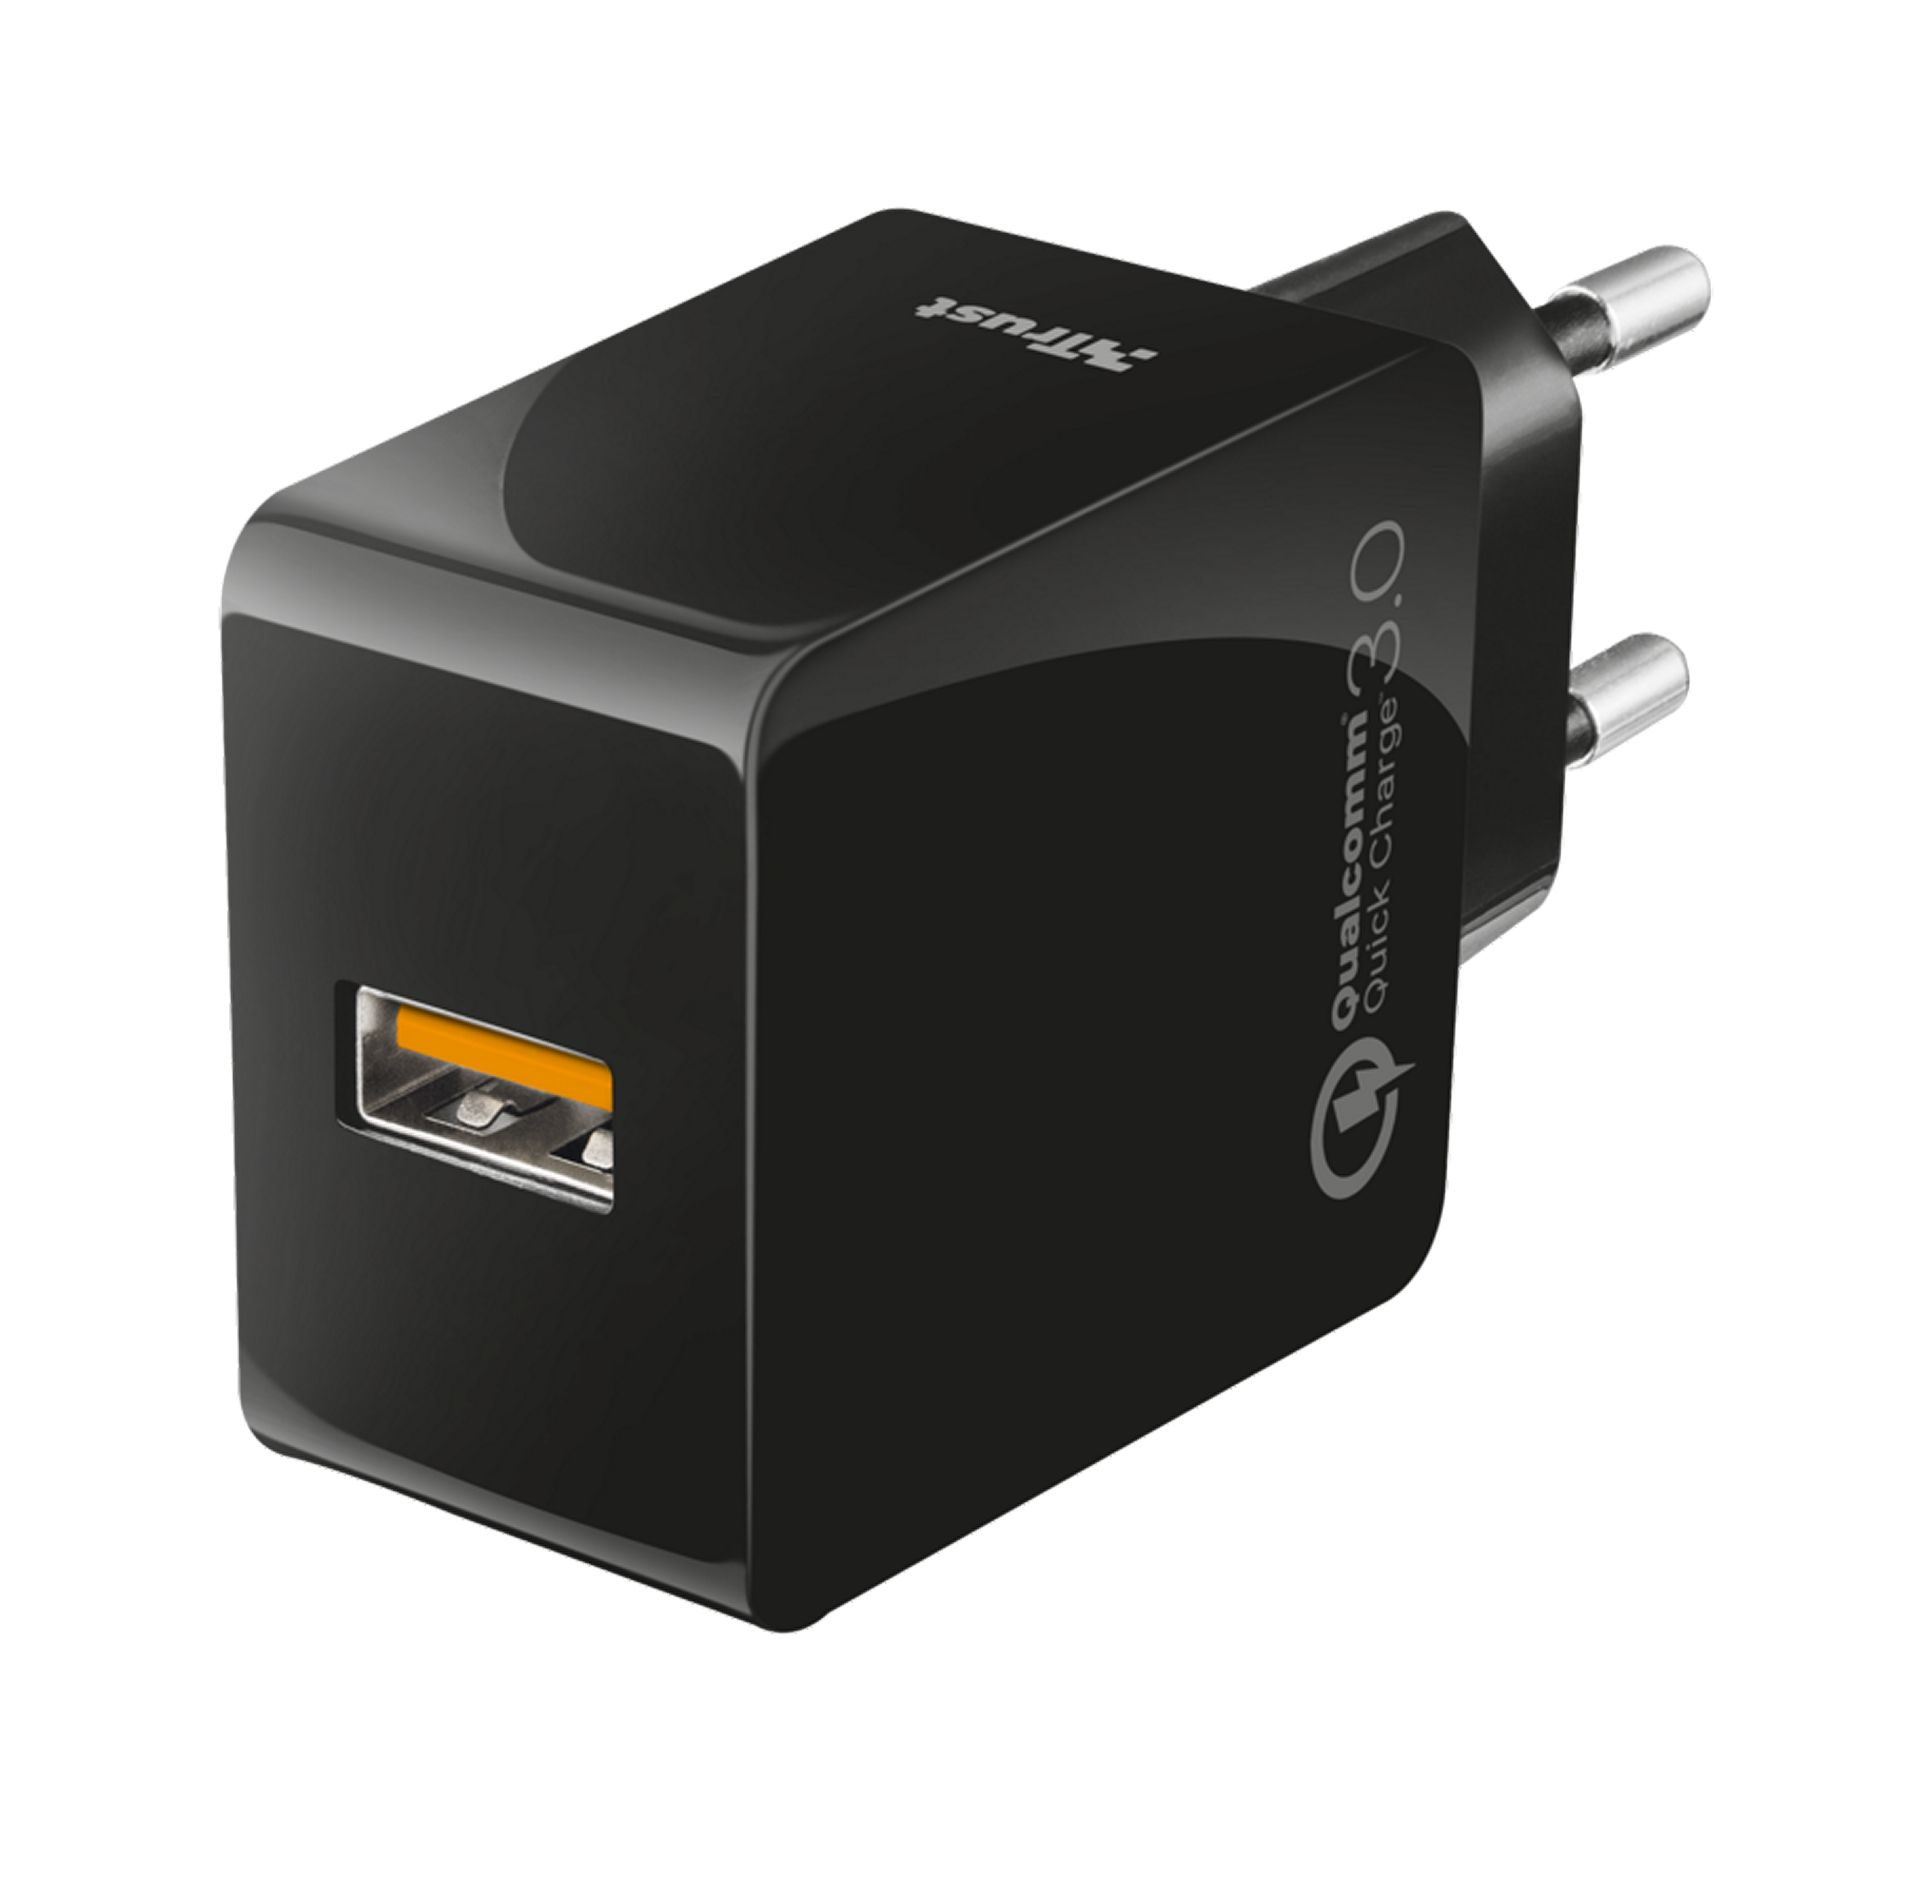 Trust URBAN Ultra Fast - Strømadapter - 18 watt - Quick Charge 3.0 (USB) (21818)